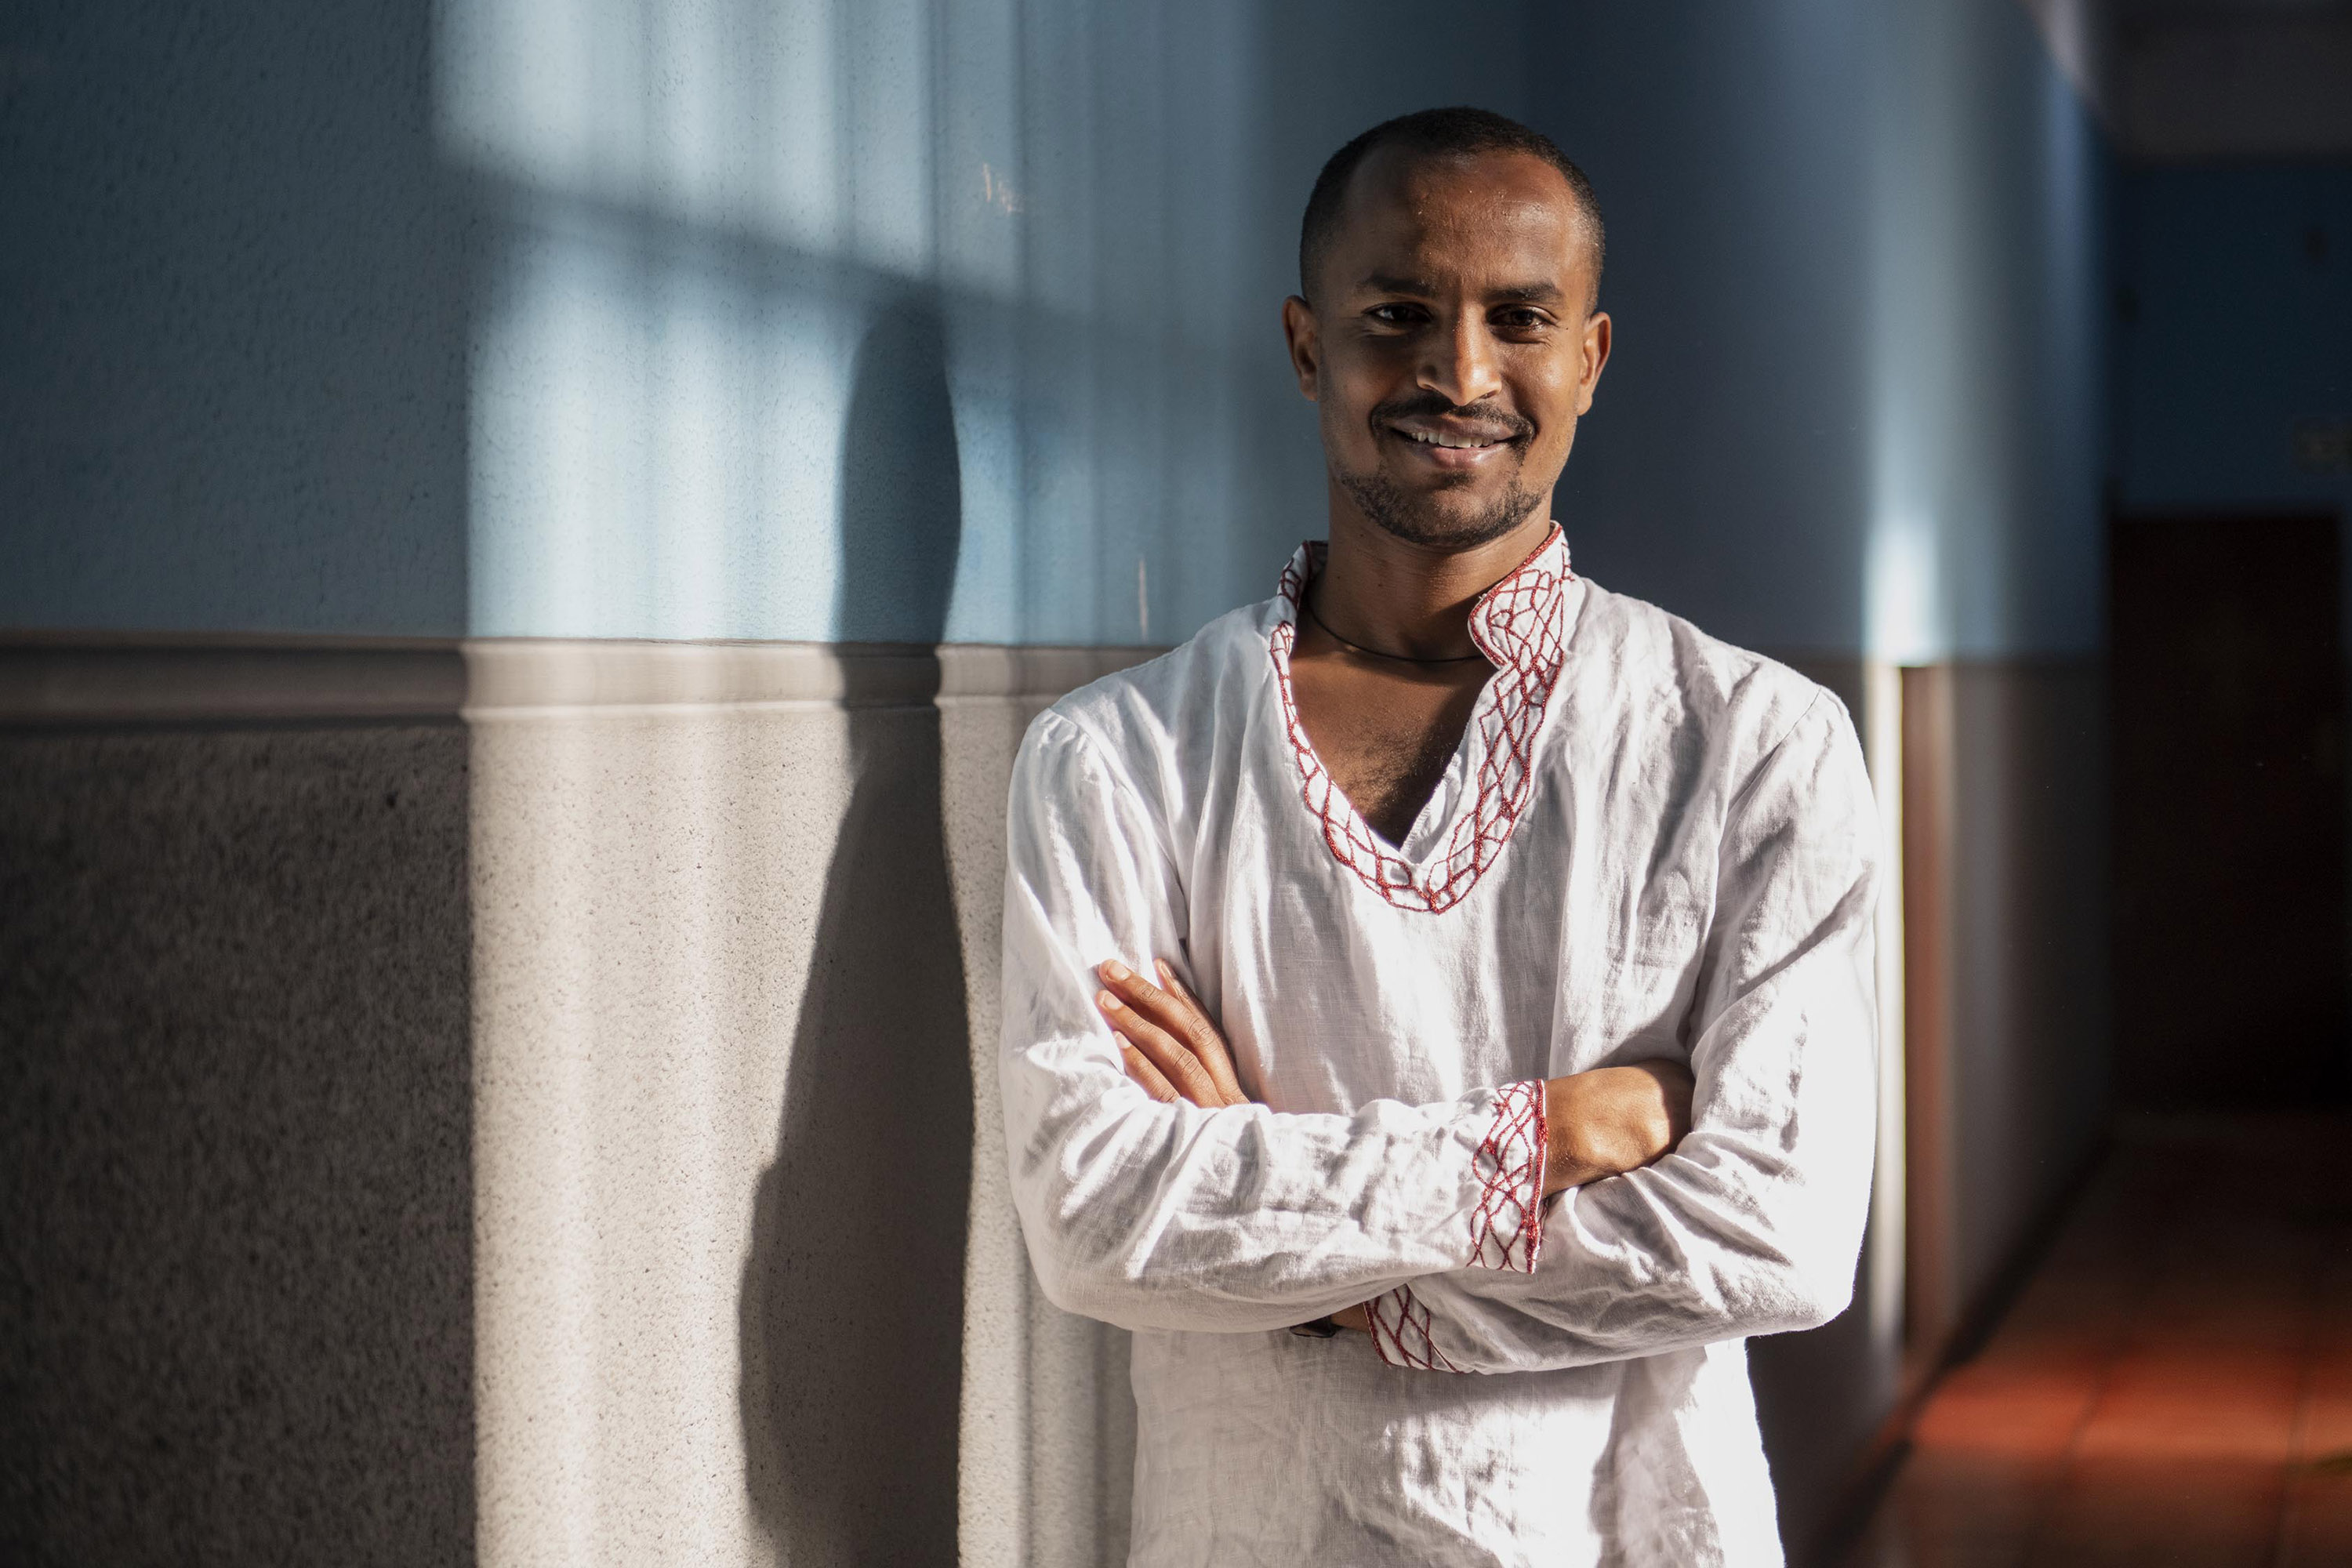 12 September 2019: Tadesse Yemane has been living in South Africa as an asylum seeker from Ethiopia for the past 16 years.